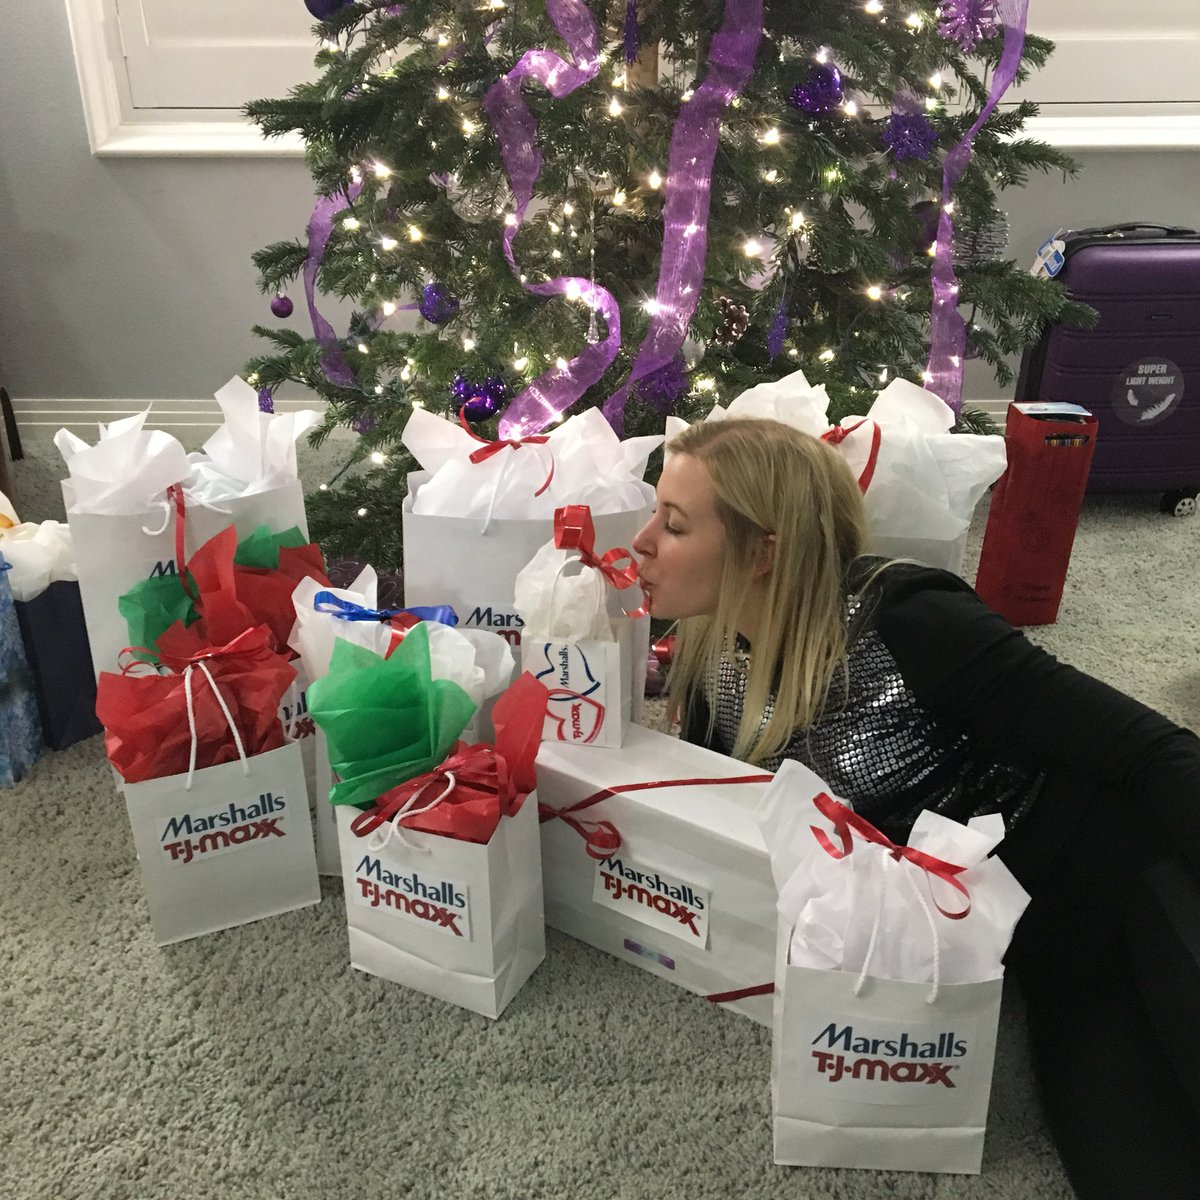 shauna parisi on twitter its a christmas miracle marshalls tjmaxx moreplease marshallssurprise maxxlife bestchristmas mymomrocks - Marshalls Hours Christmas Eve